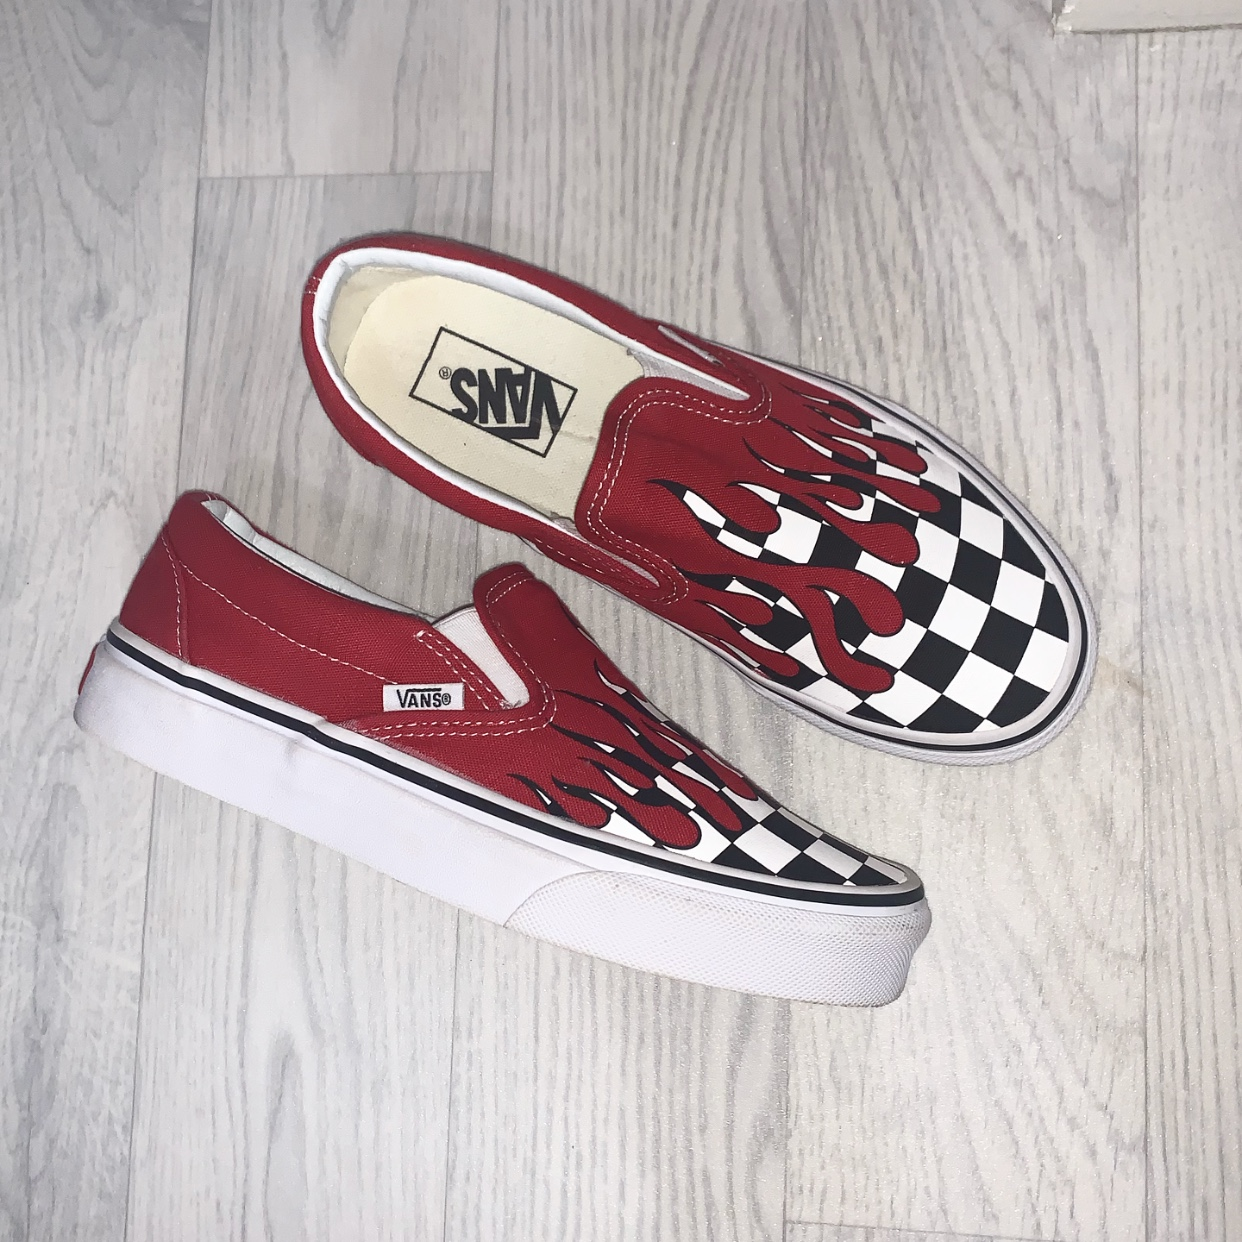 Selling my checkered red drip vans